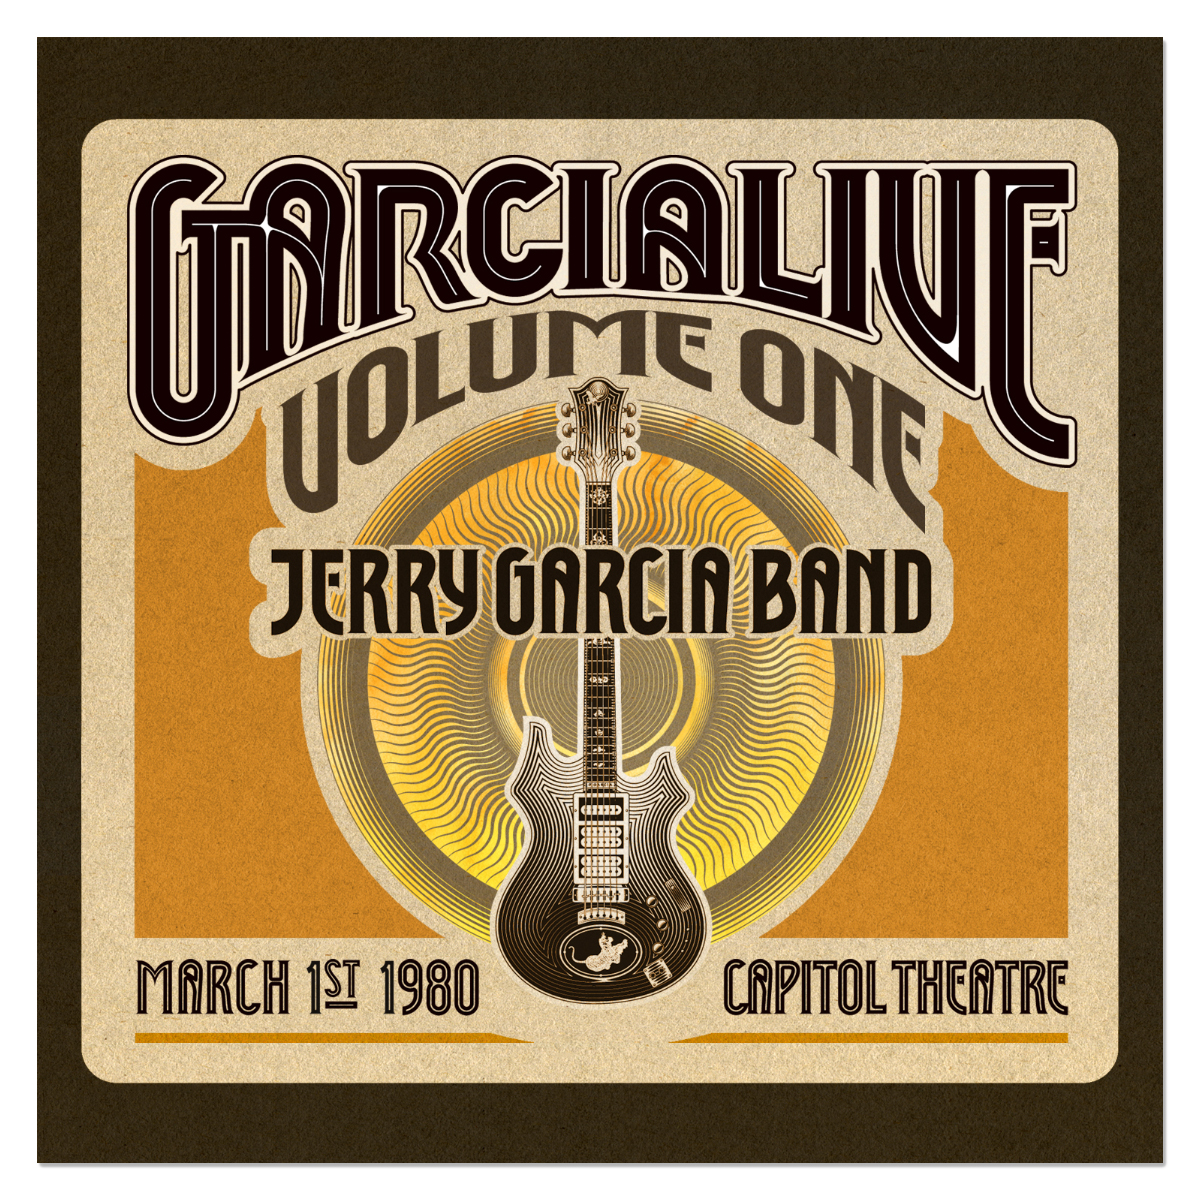 Jerry Garcia Band - GarciaLive Volume 1: 3/1/80 3-CD Set